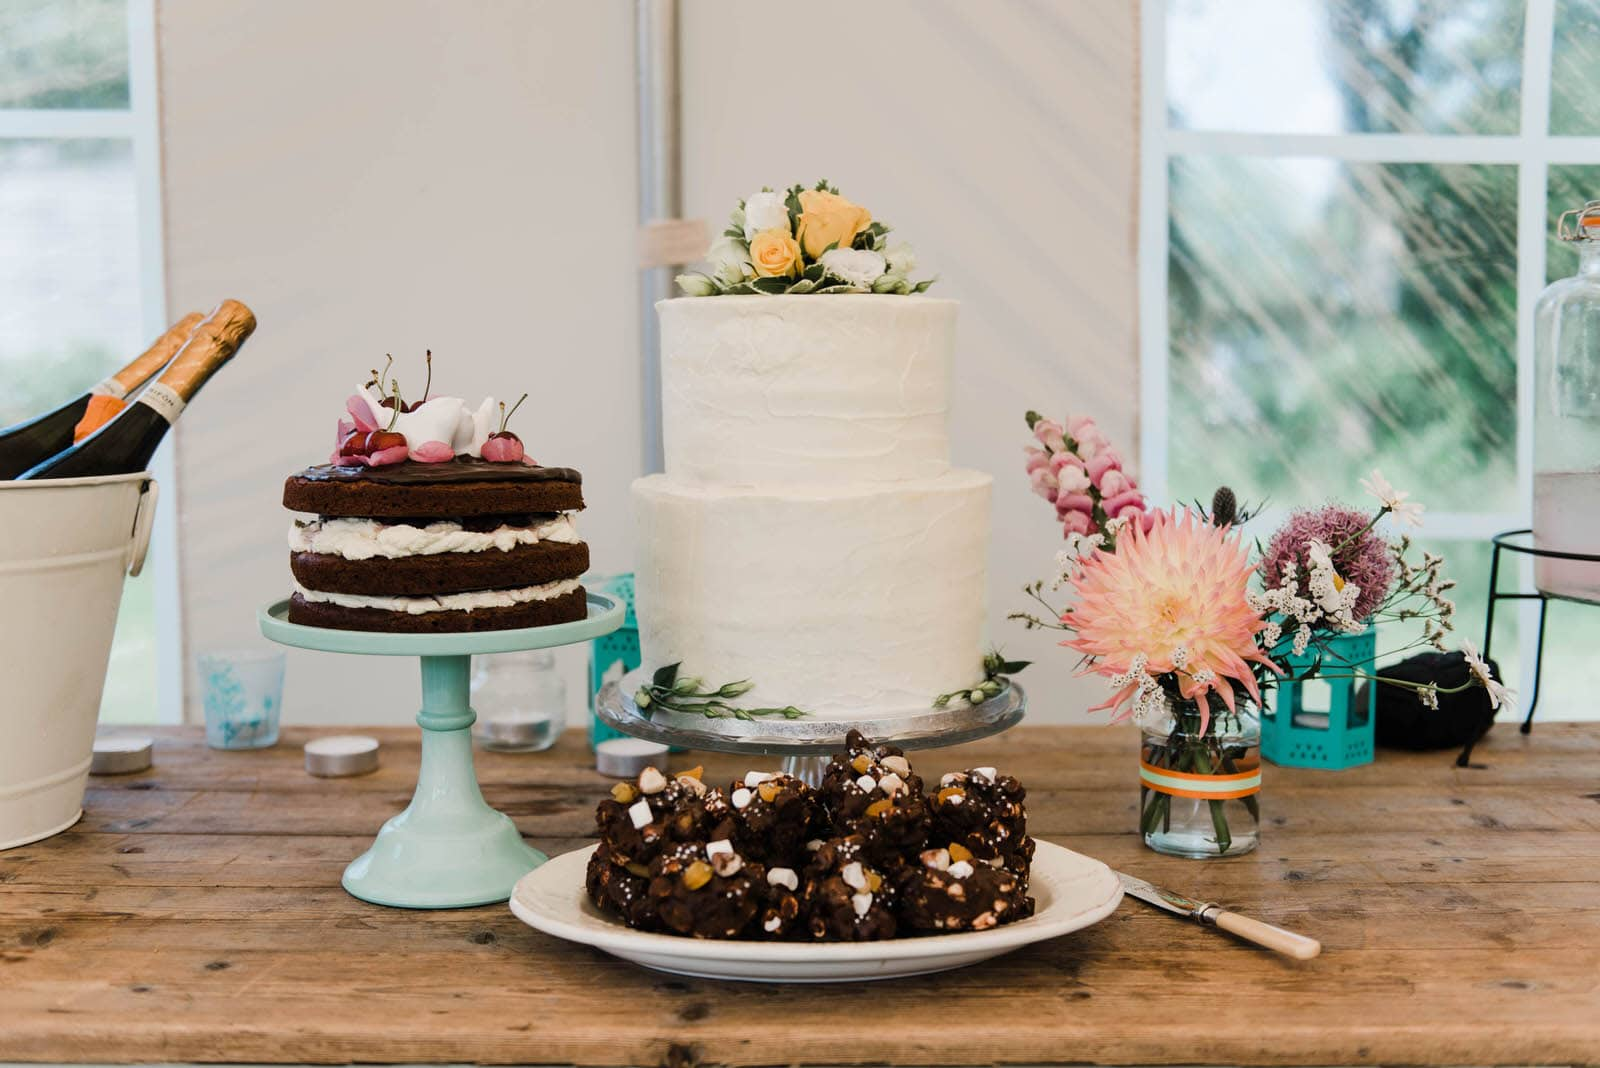 selection of wedding cakes and bakes on a wooden table at a Lancashire elopement